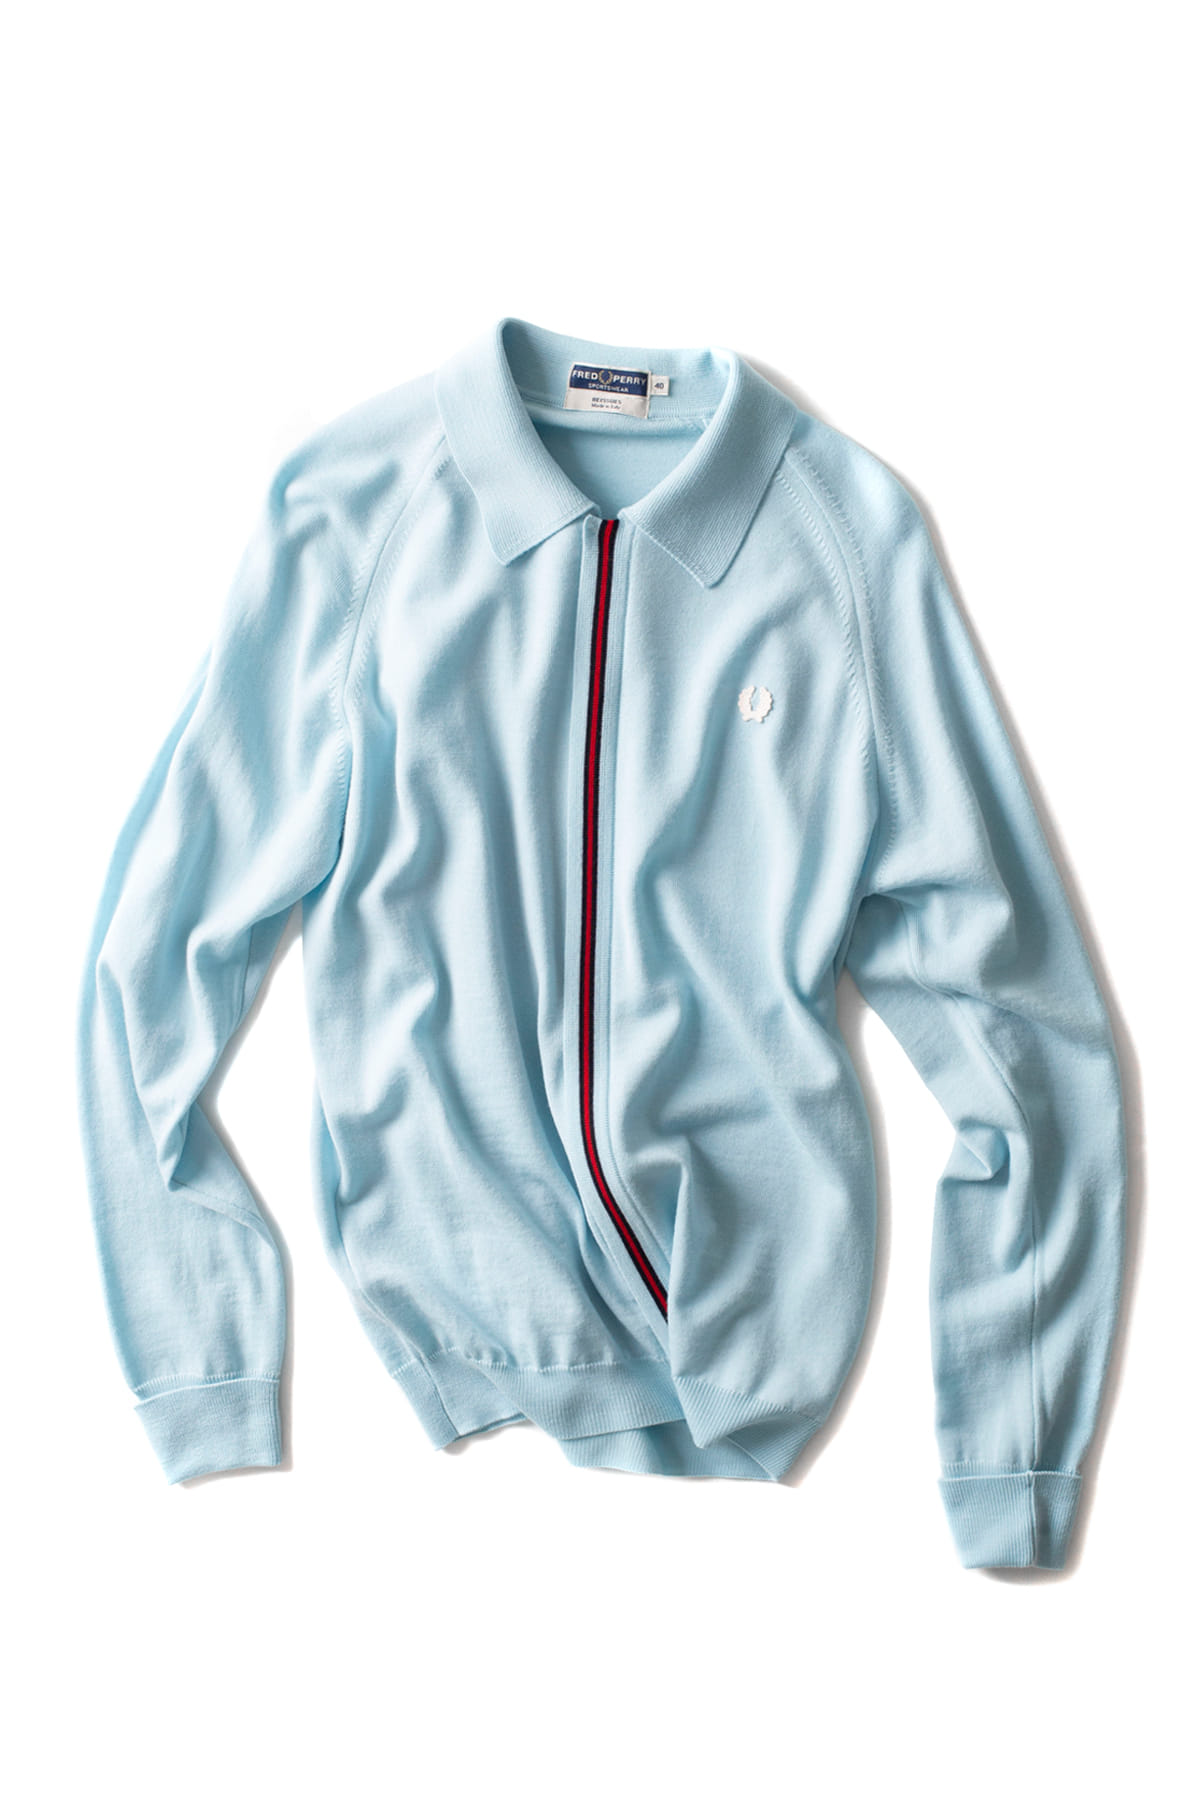 FRED PERRY : L/S Zip Through Knitted Shirt (Teal Green)